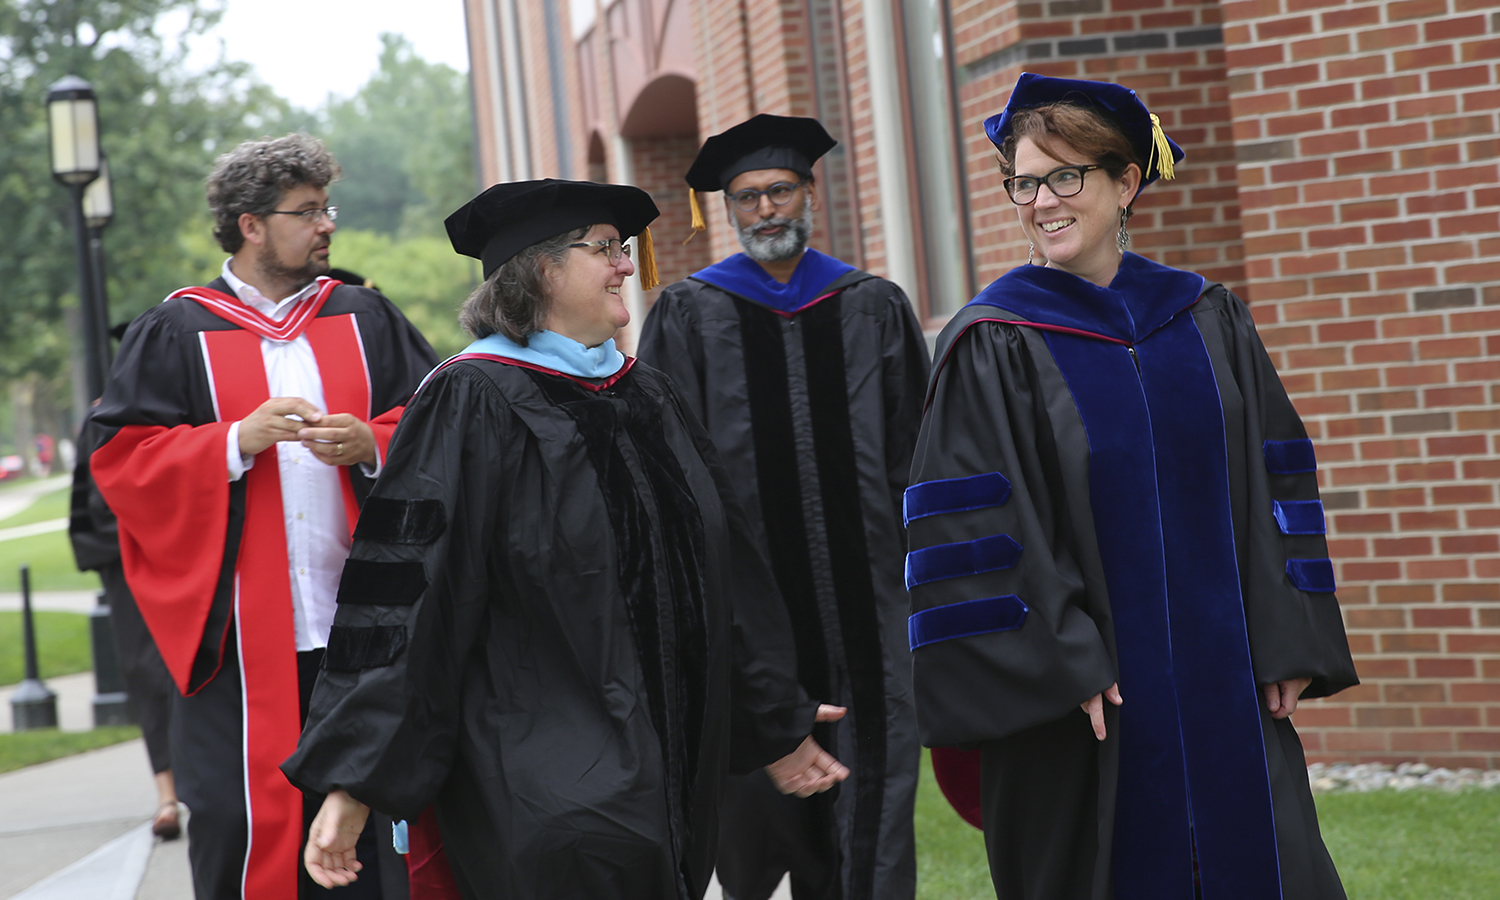 Associate Professor of Education Mary Kelly (front left), Associate Professor of Political Science Stacey Philbrick Yadav, Associate Professor of English Rob Carson (back left) and Associate Professor of Political Science Vikash Yadav process before Convocation 2018.